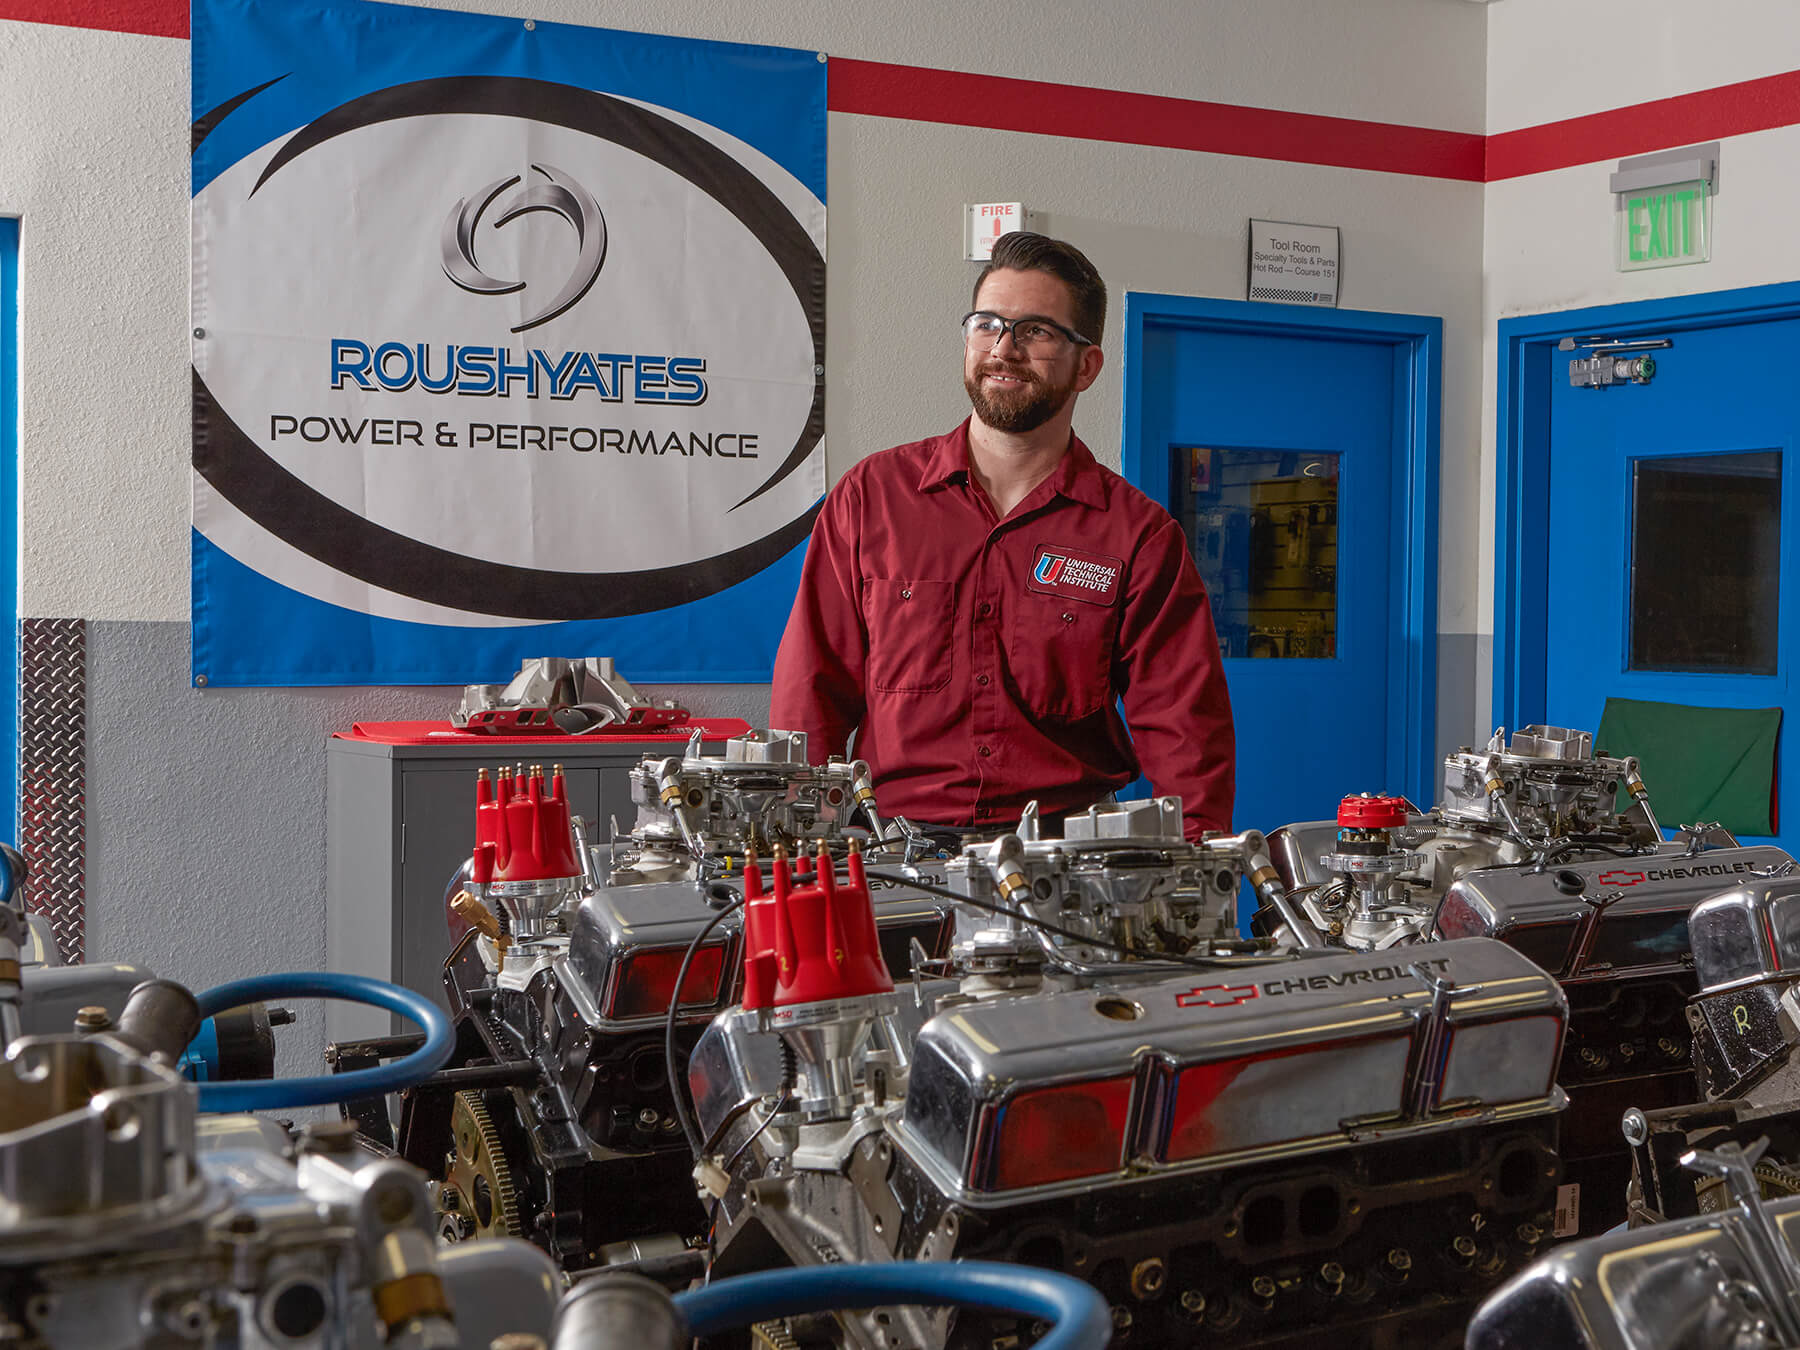 UTI instructor smiling in-front of Chevrolet engines at the Dallas campus